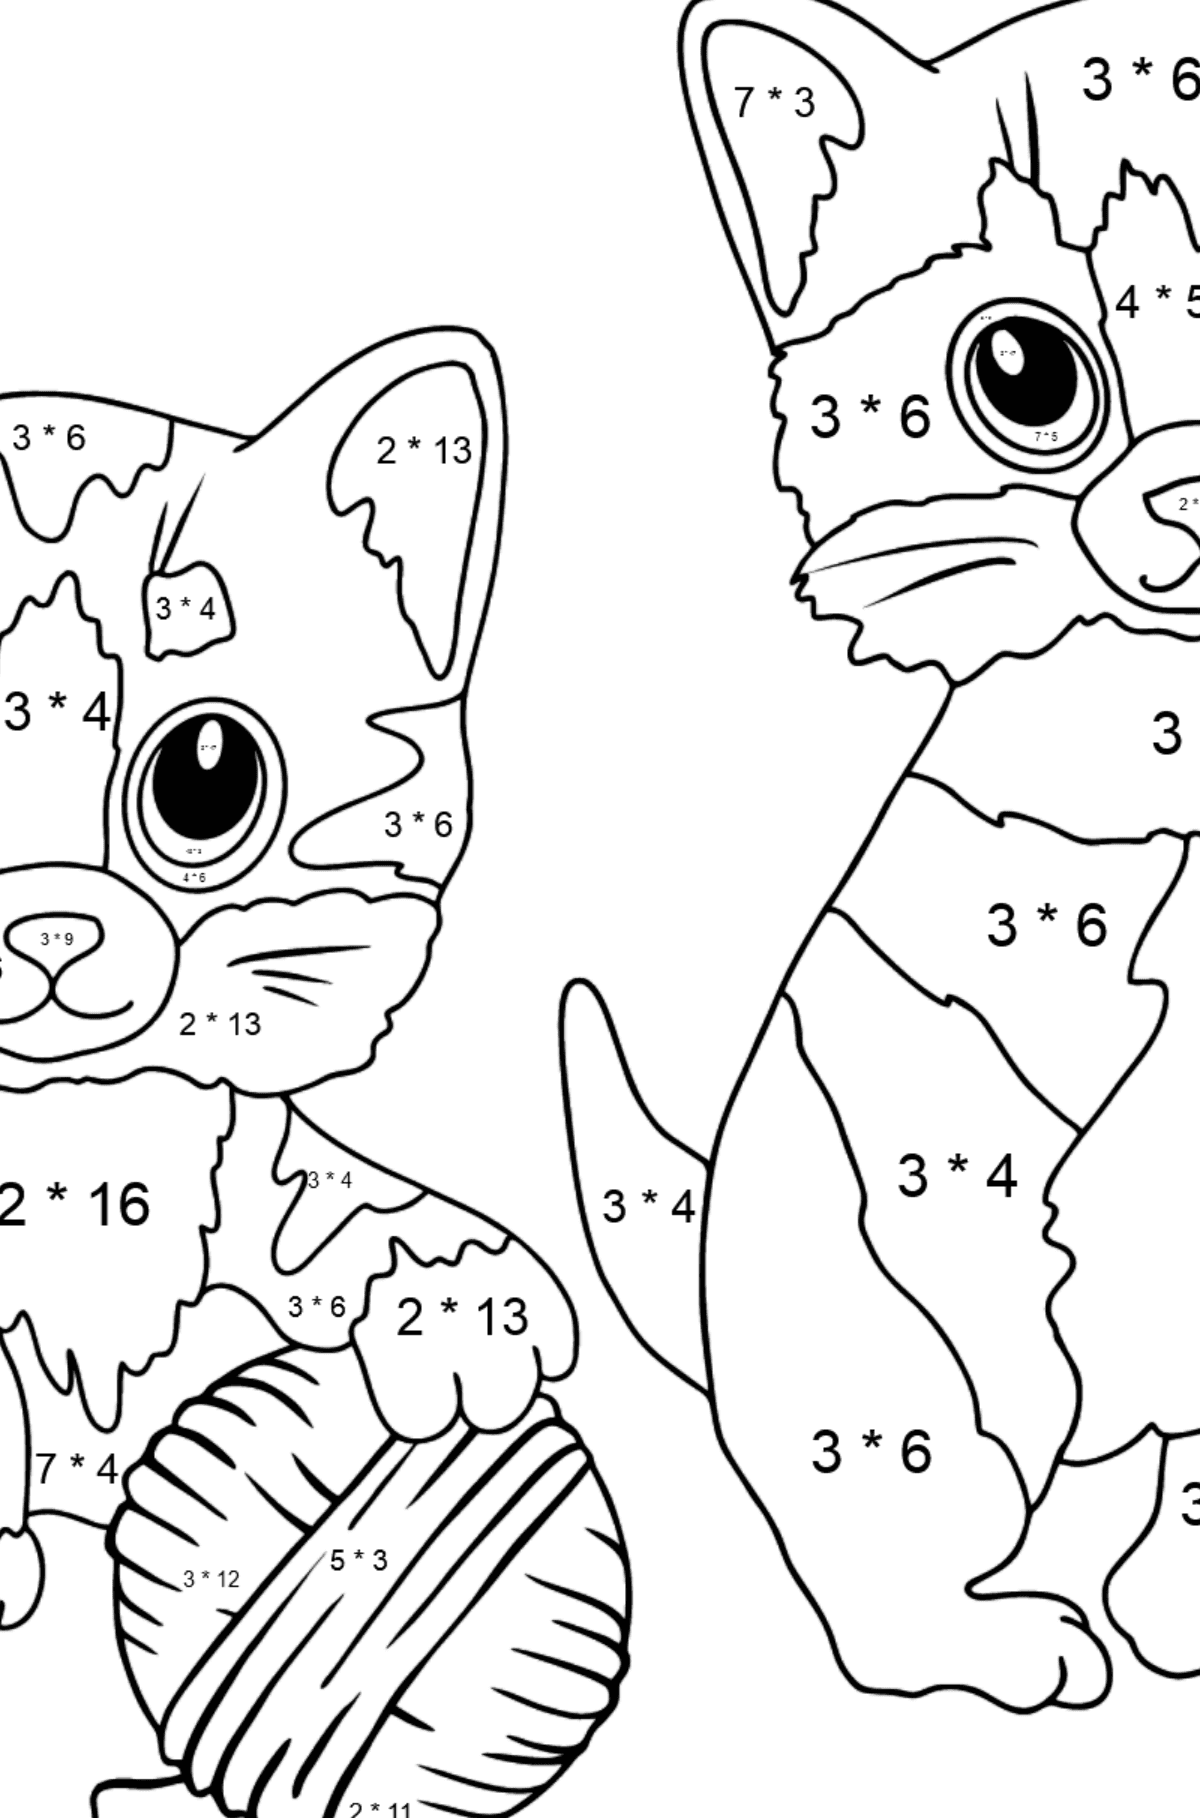 Coloring Page - Kitty Cat - Math Coloring - Multiplication for Kids